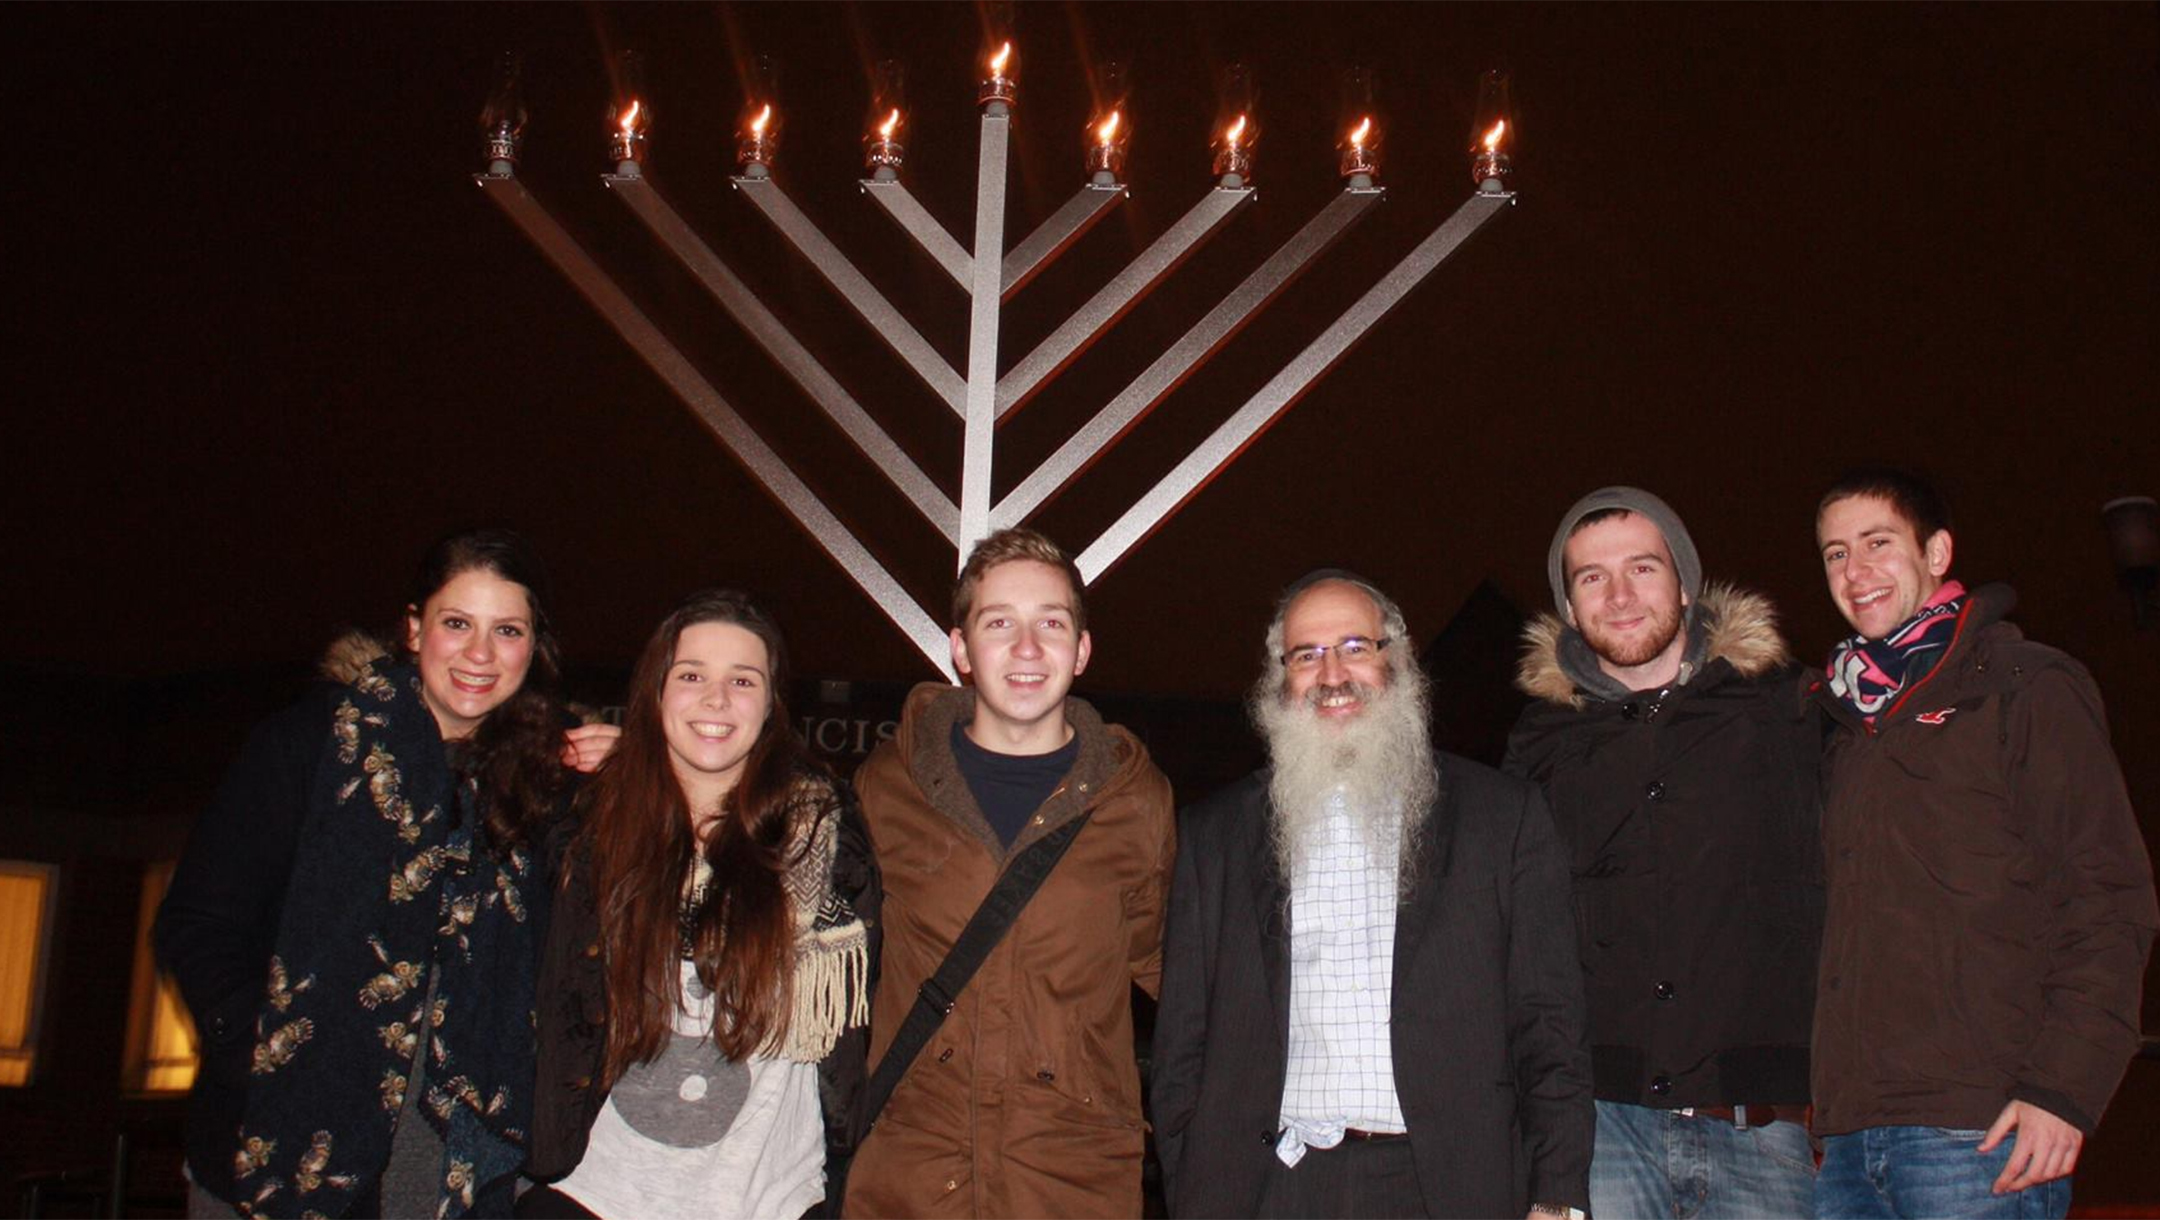 Rabbi Fishel Cohen with Jewish students at a candle lighting ceremony in Hanukka in Birmingham, the United Kingdom on Dec. 24, 2014. (Courtesy of Rabbi Fighsel Cohen /The Birmingham Tab)